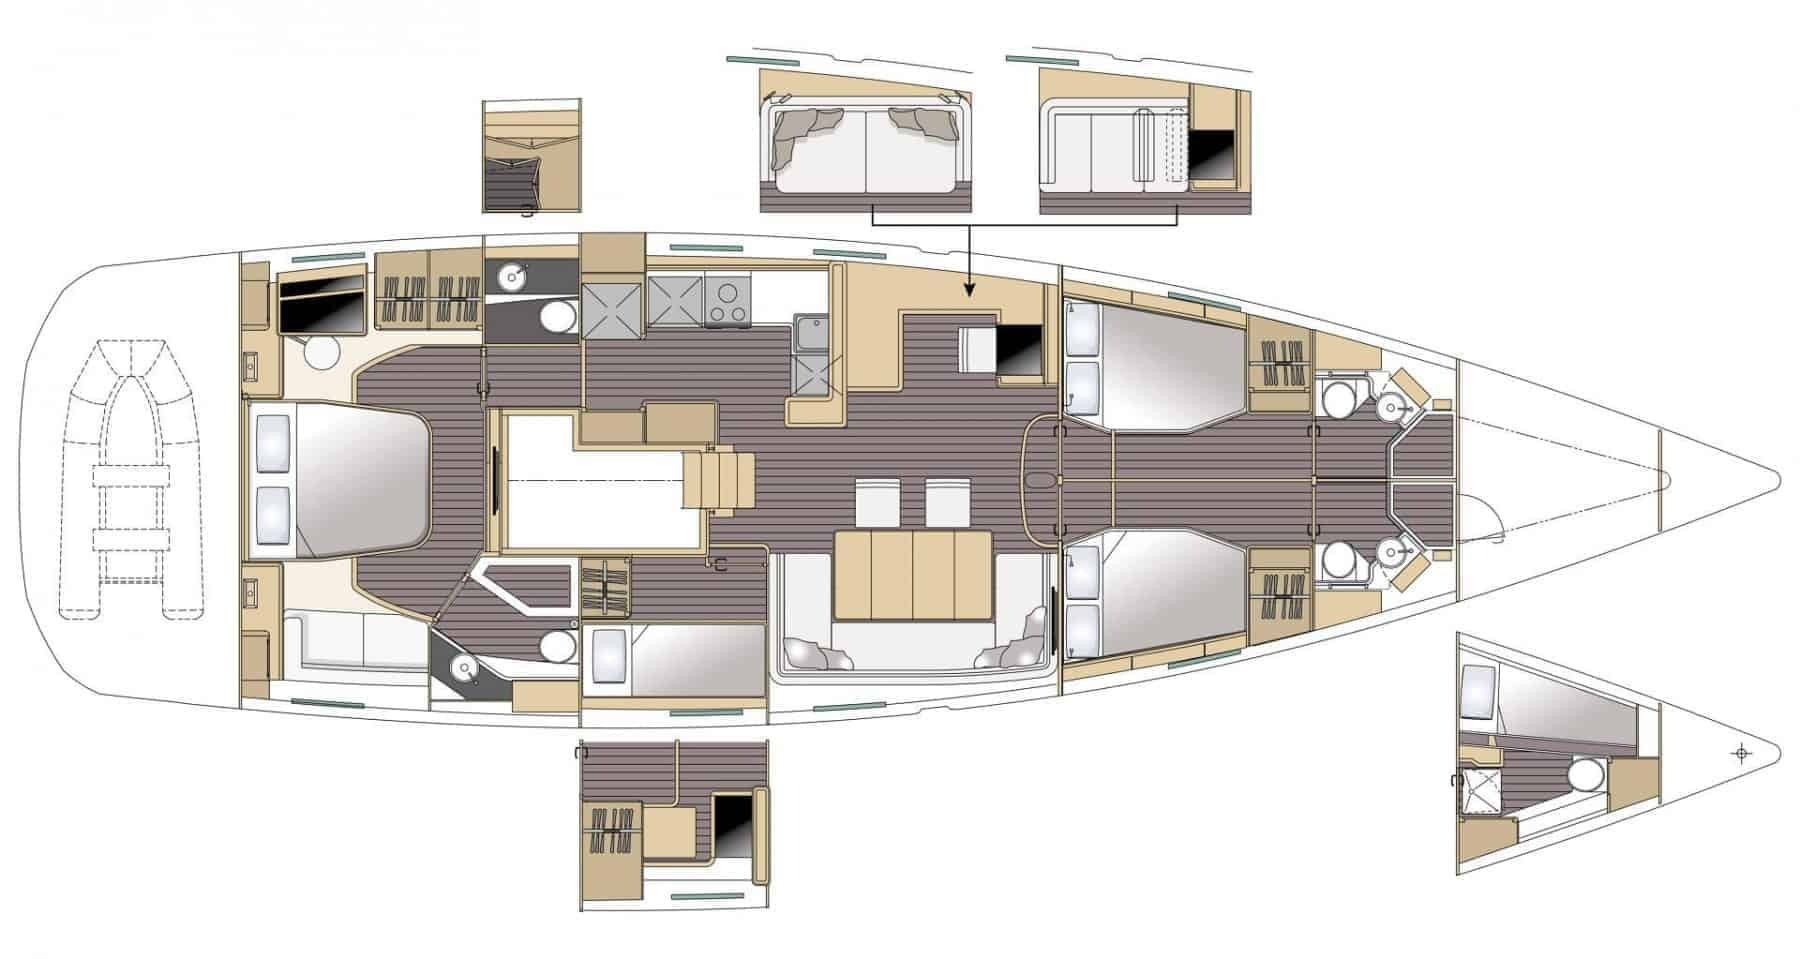 Jeanneau-64-layout-1-charter-ownership-yacht